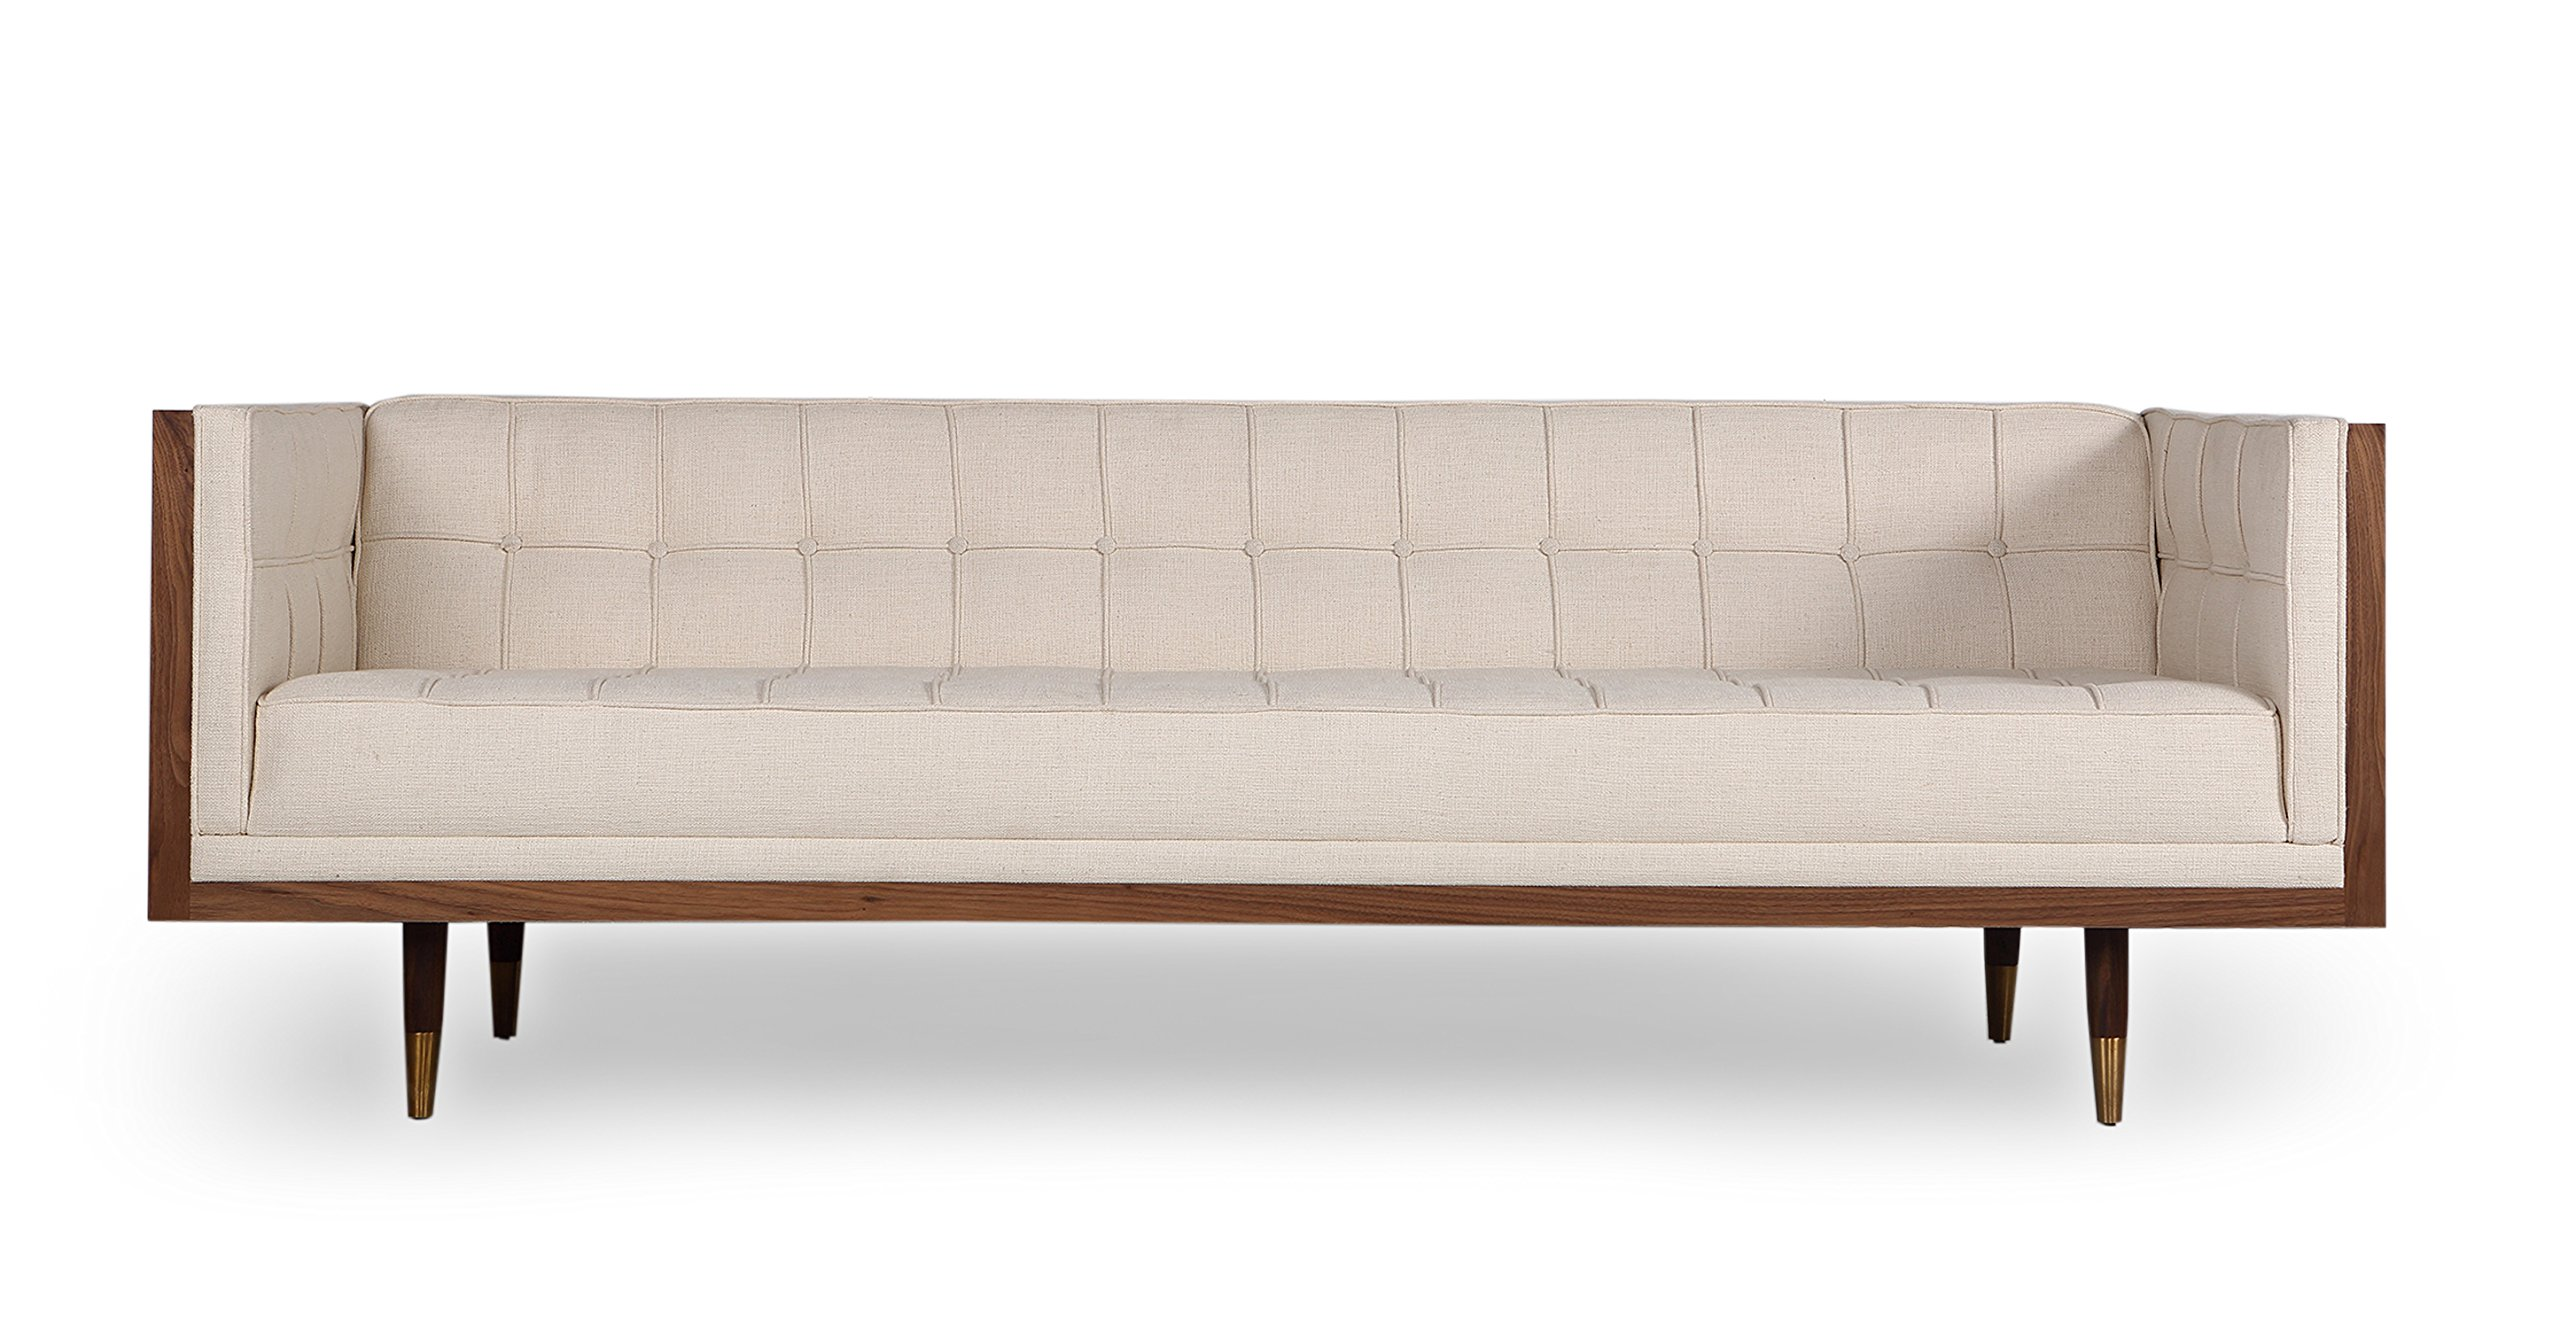 Kardiel Woodrow Midcentury Modern Box Sofa, Cabana Husk/Walnut - Brand: KARDIEL; Style: Woodrow Box Sofa; Cushion: Multi-density low profile Dacron wrapped foam cushions; Feature: The entire sofa is stitched and crafted by hand Seat Upholstery: Vintage Tailored Twill: 60% Linen, 20% Cotton, 20% Nylon; Button Upholstery: Vintage Tailored Twill; Fasteners: Traditional wood dowel joinery Body: Genuine American Walnut Veneer wood; Legs: Accent w/ Metal capped in Copper for a truly mid-century modern look - sofas-couches, living-room-furniture, living-room - 81%2BTIaXLJOL -